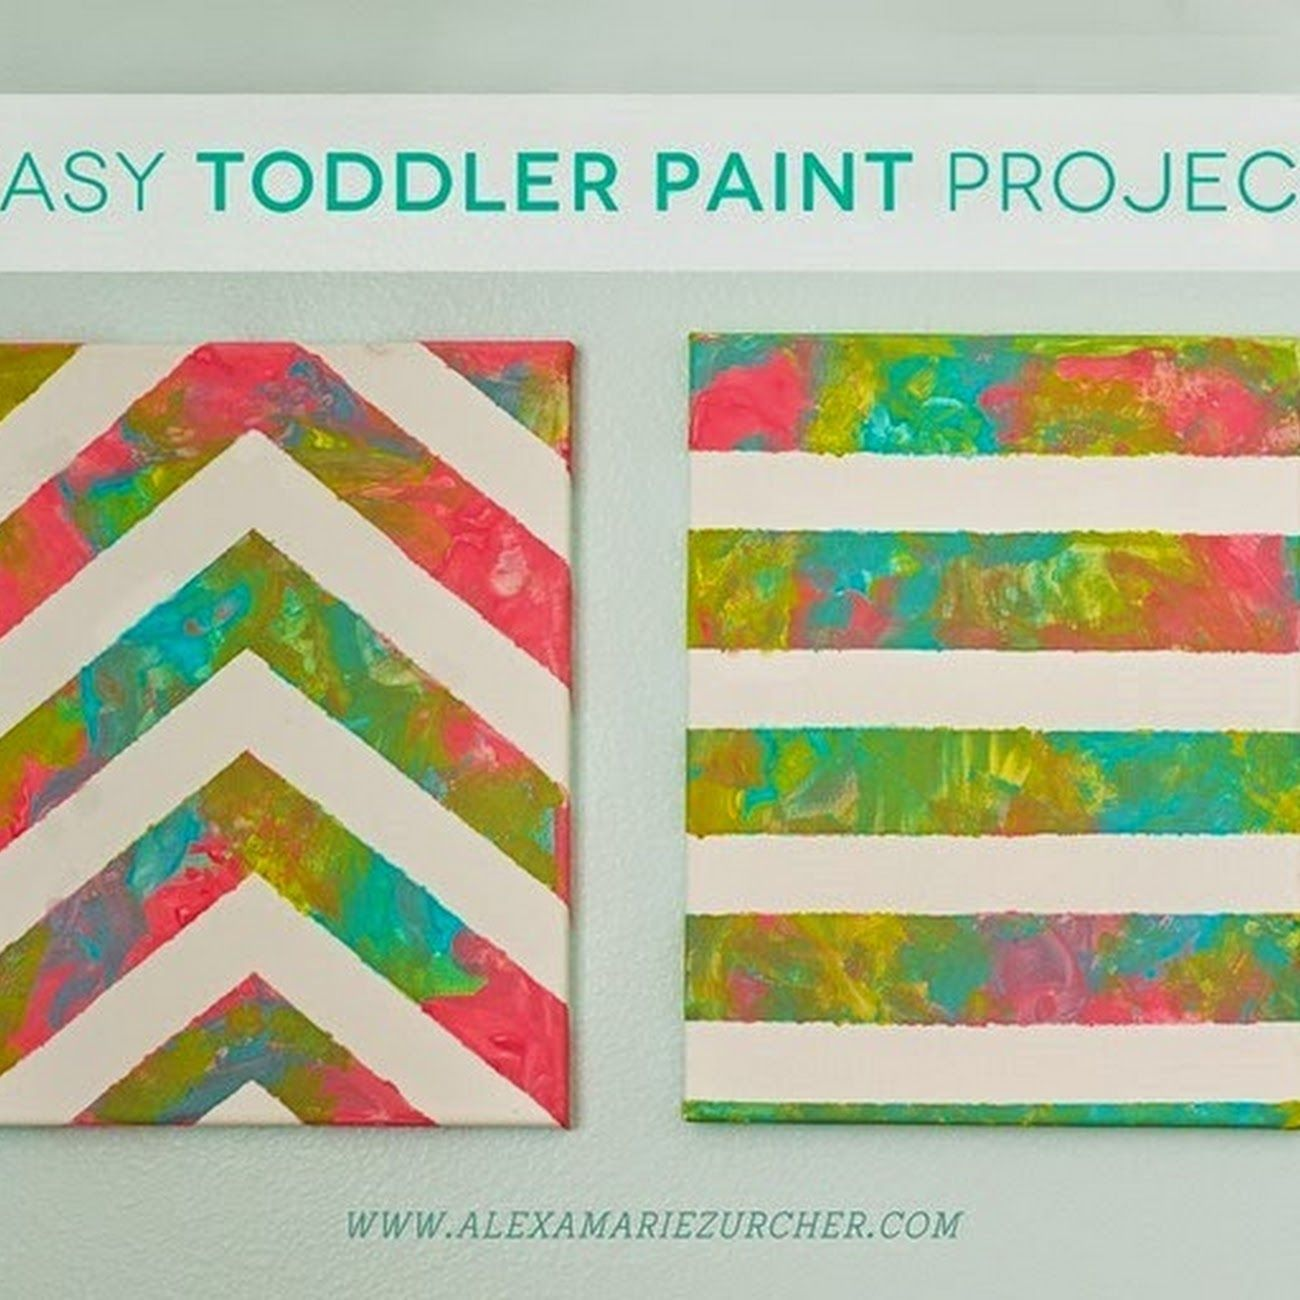 Easy Toddler Paint Project Toddler Art Projects Toddler